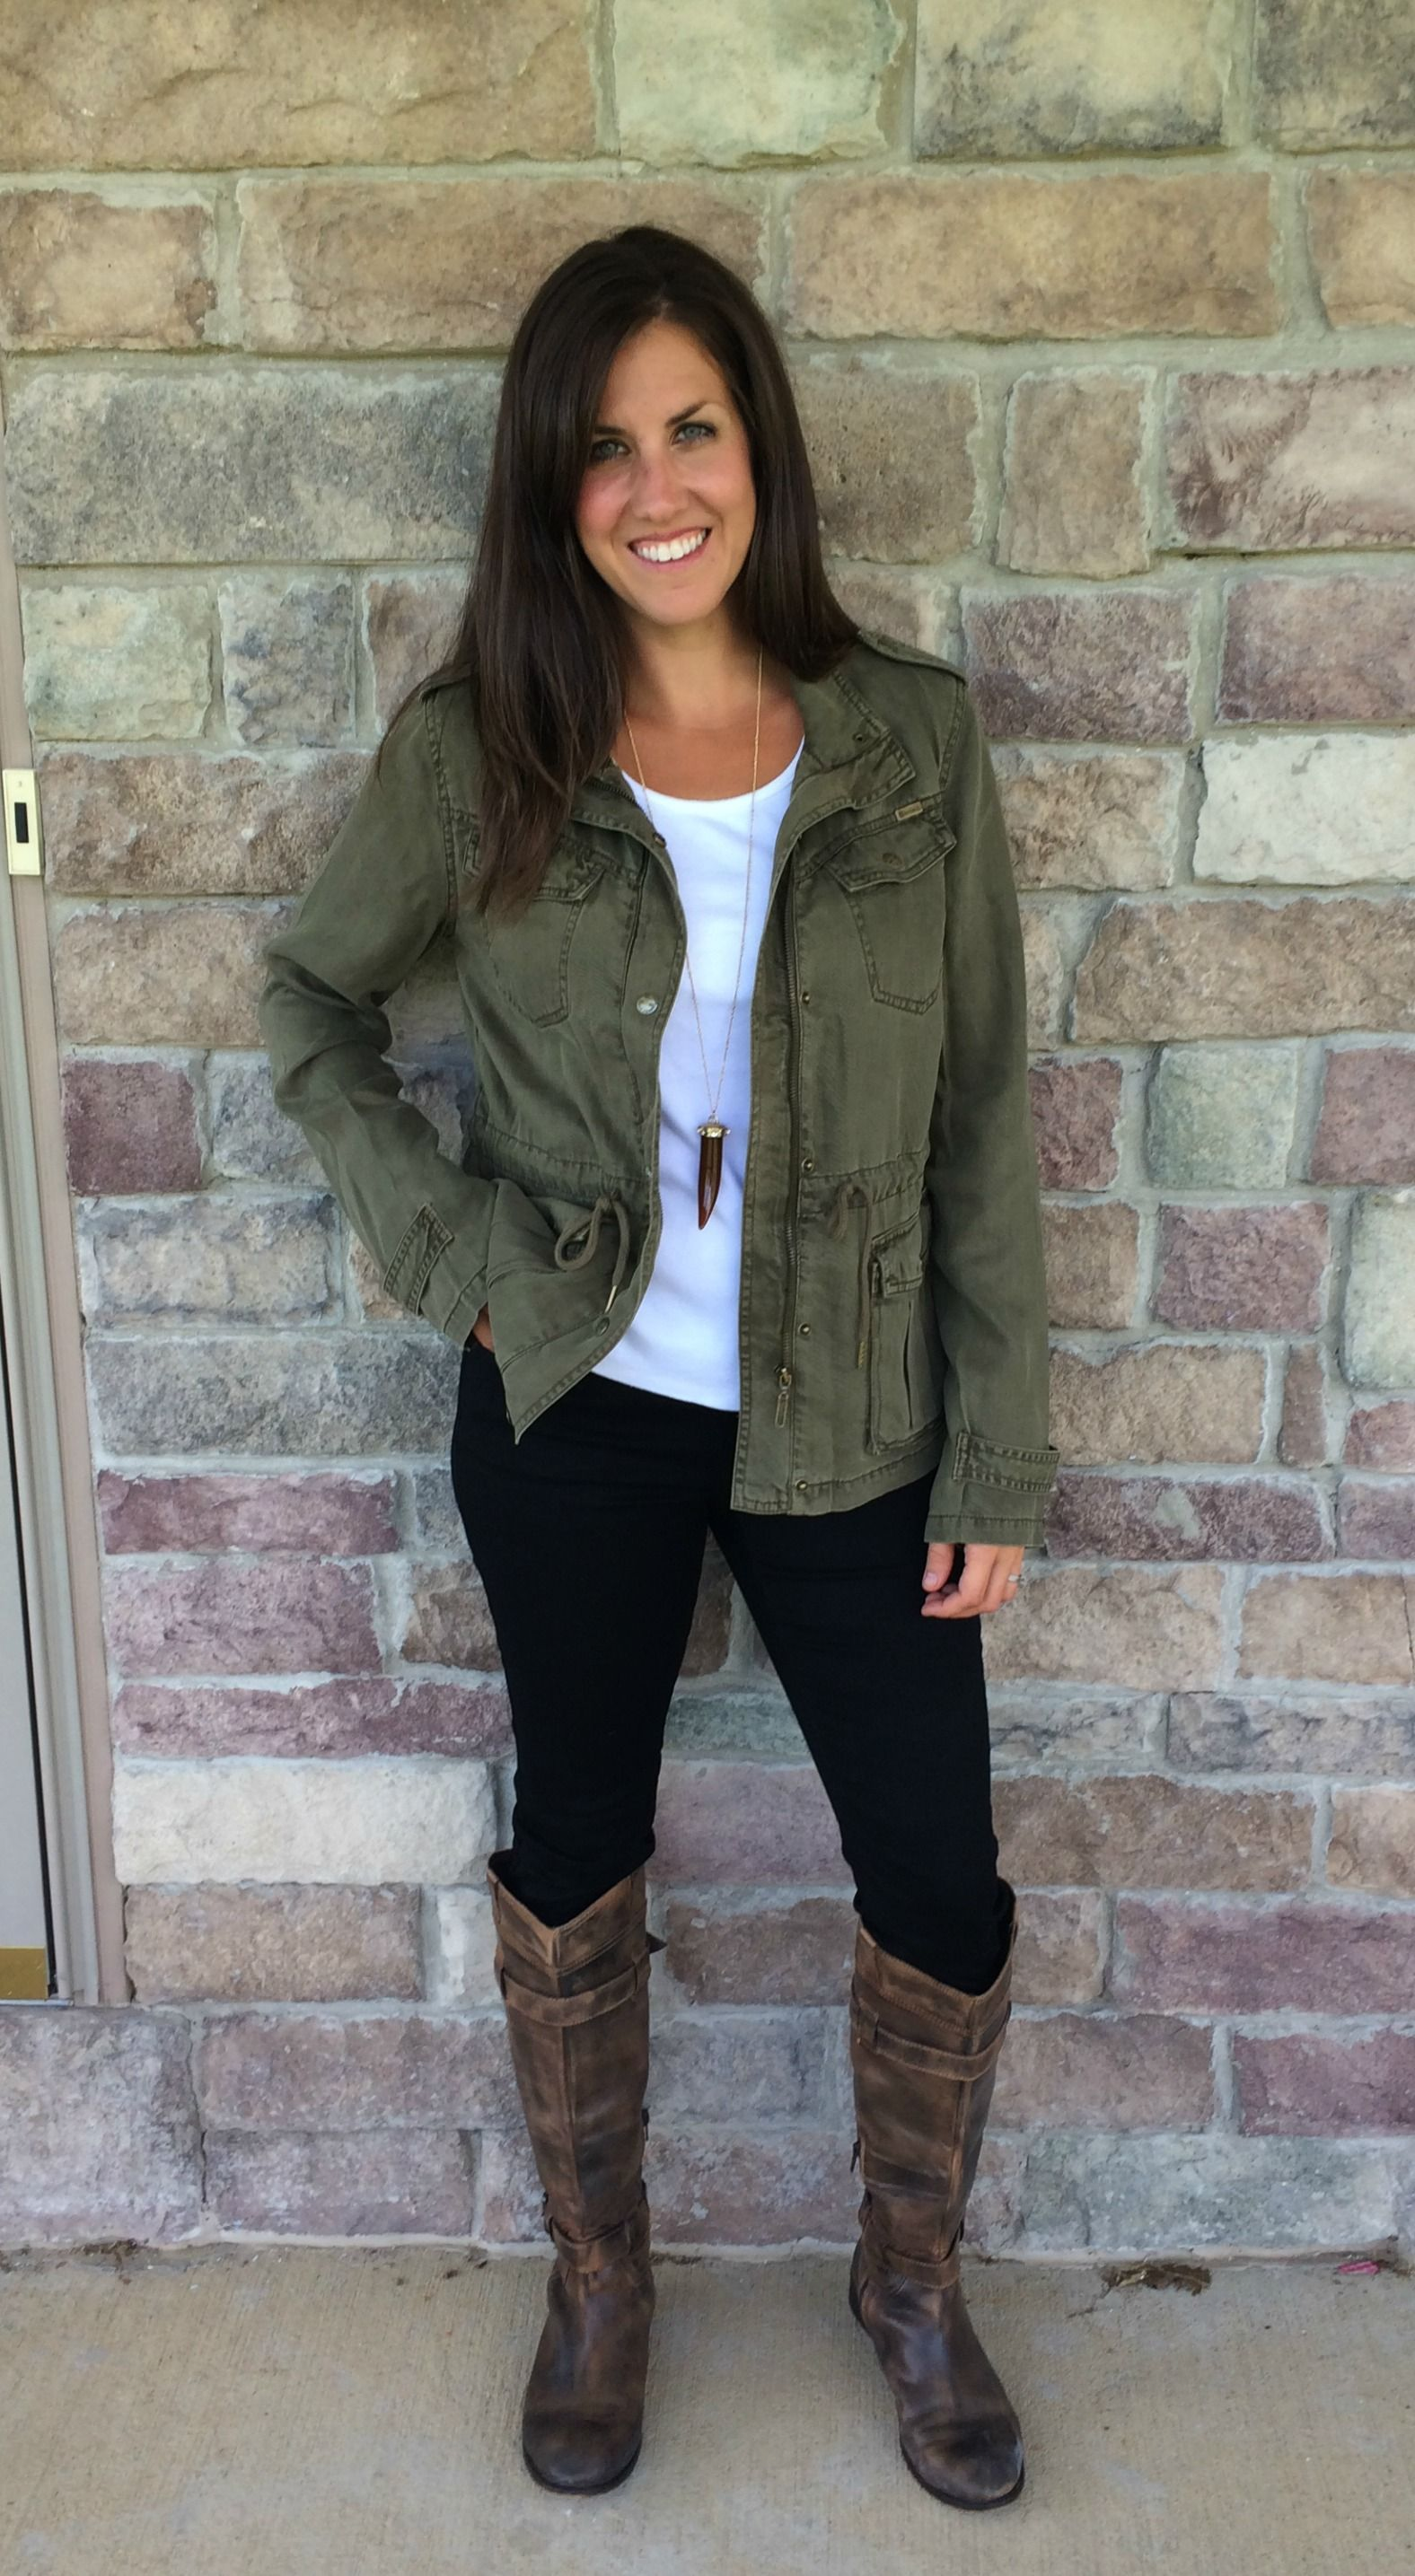 Military Olive Colored Jacket Skinny Jeans Riding Boots Outfit